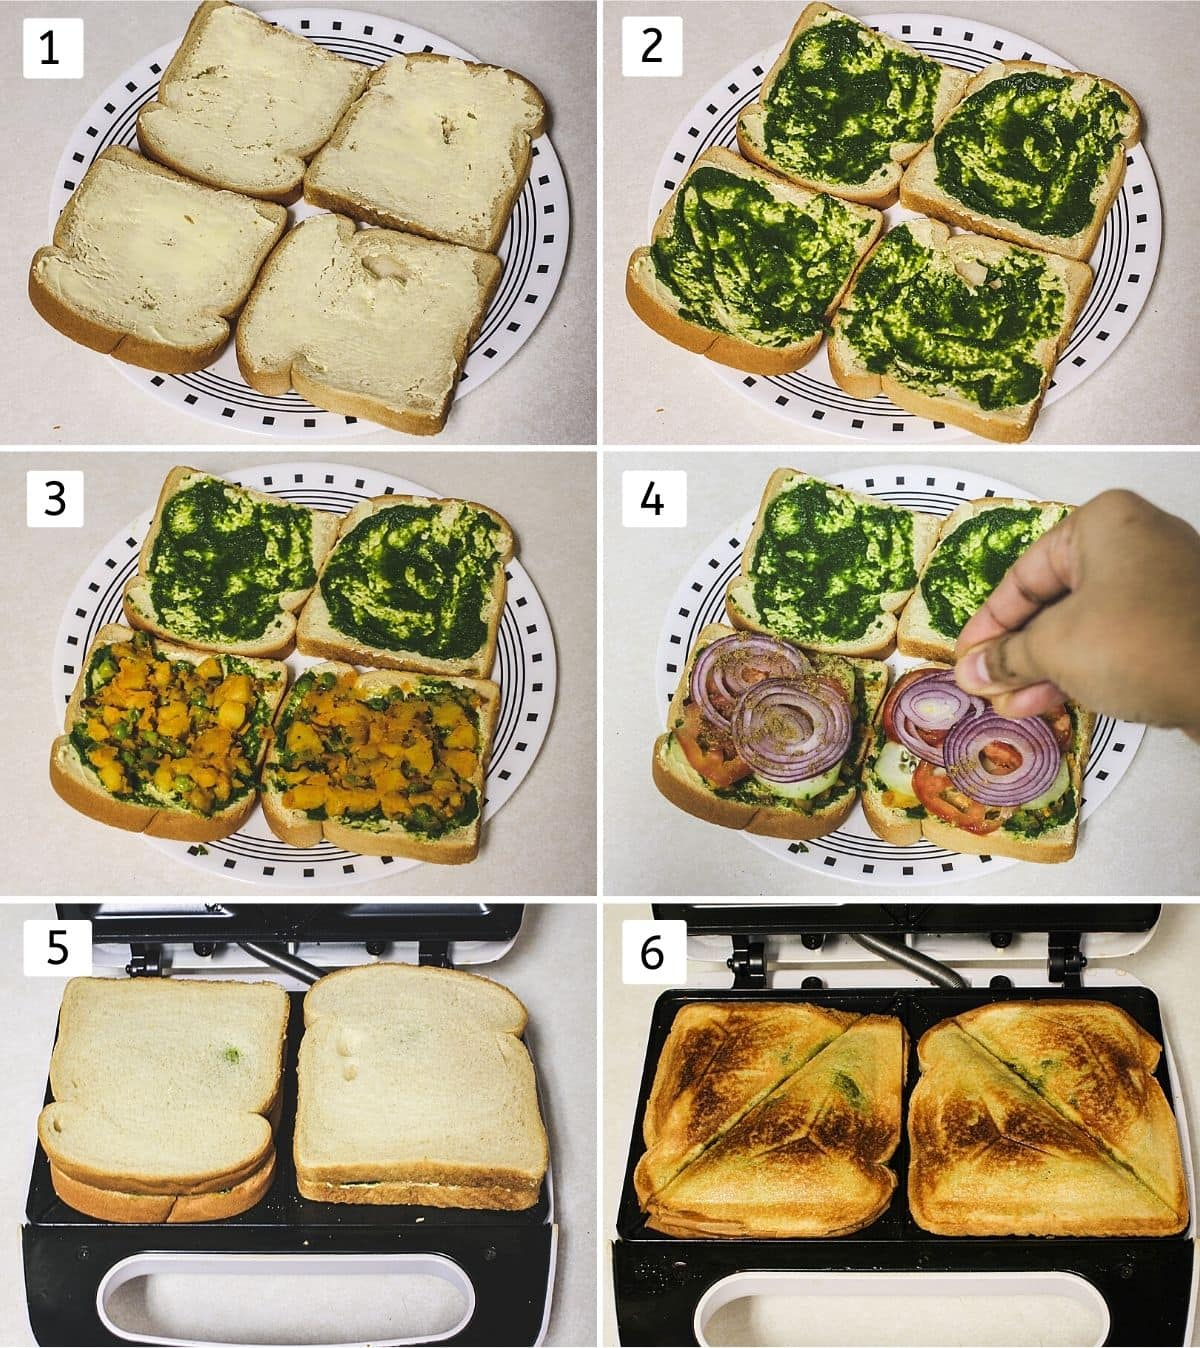 Collage of 6 steps showing applying butter on bread, apply chutney, spread masala, veggies, toast in toaster.